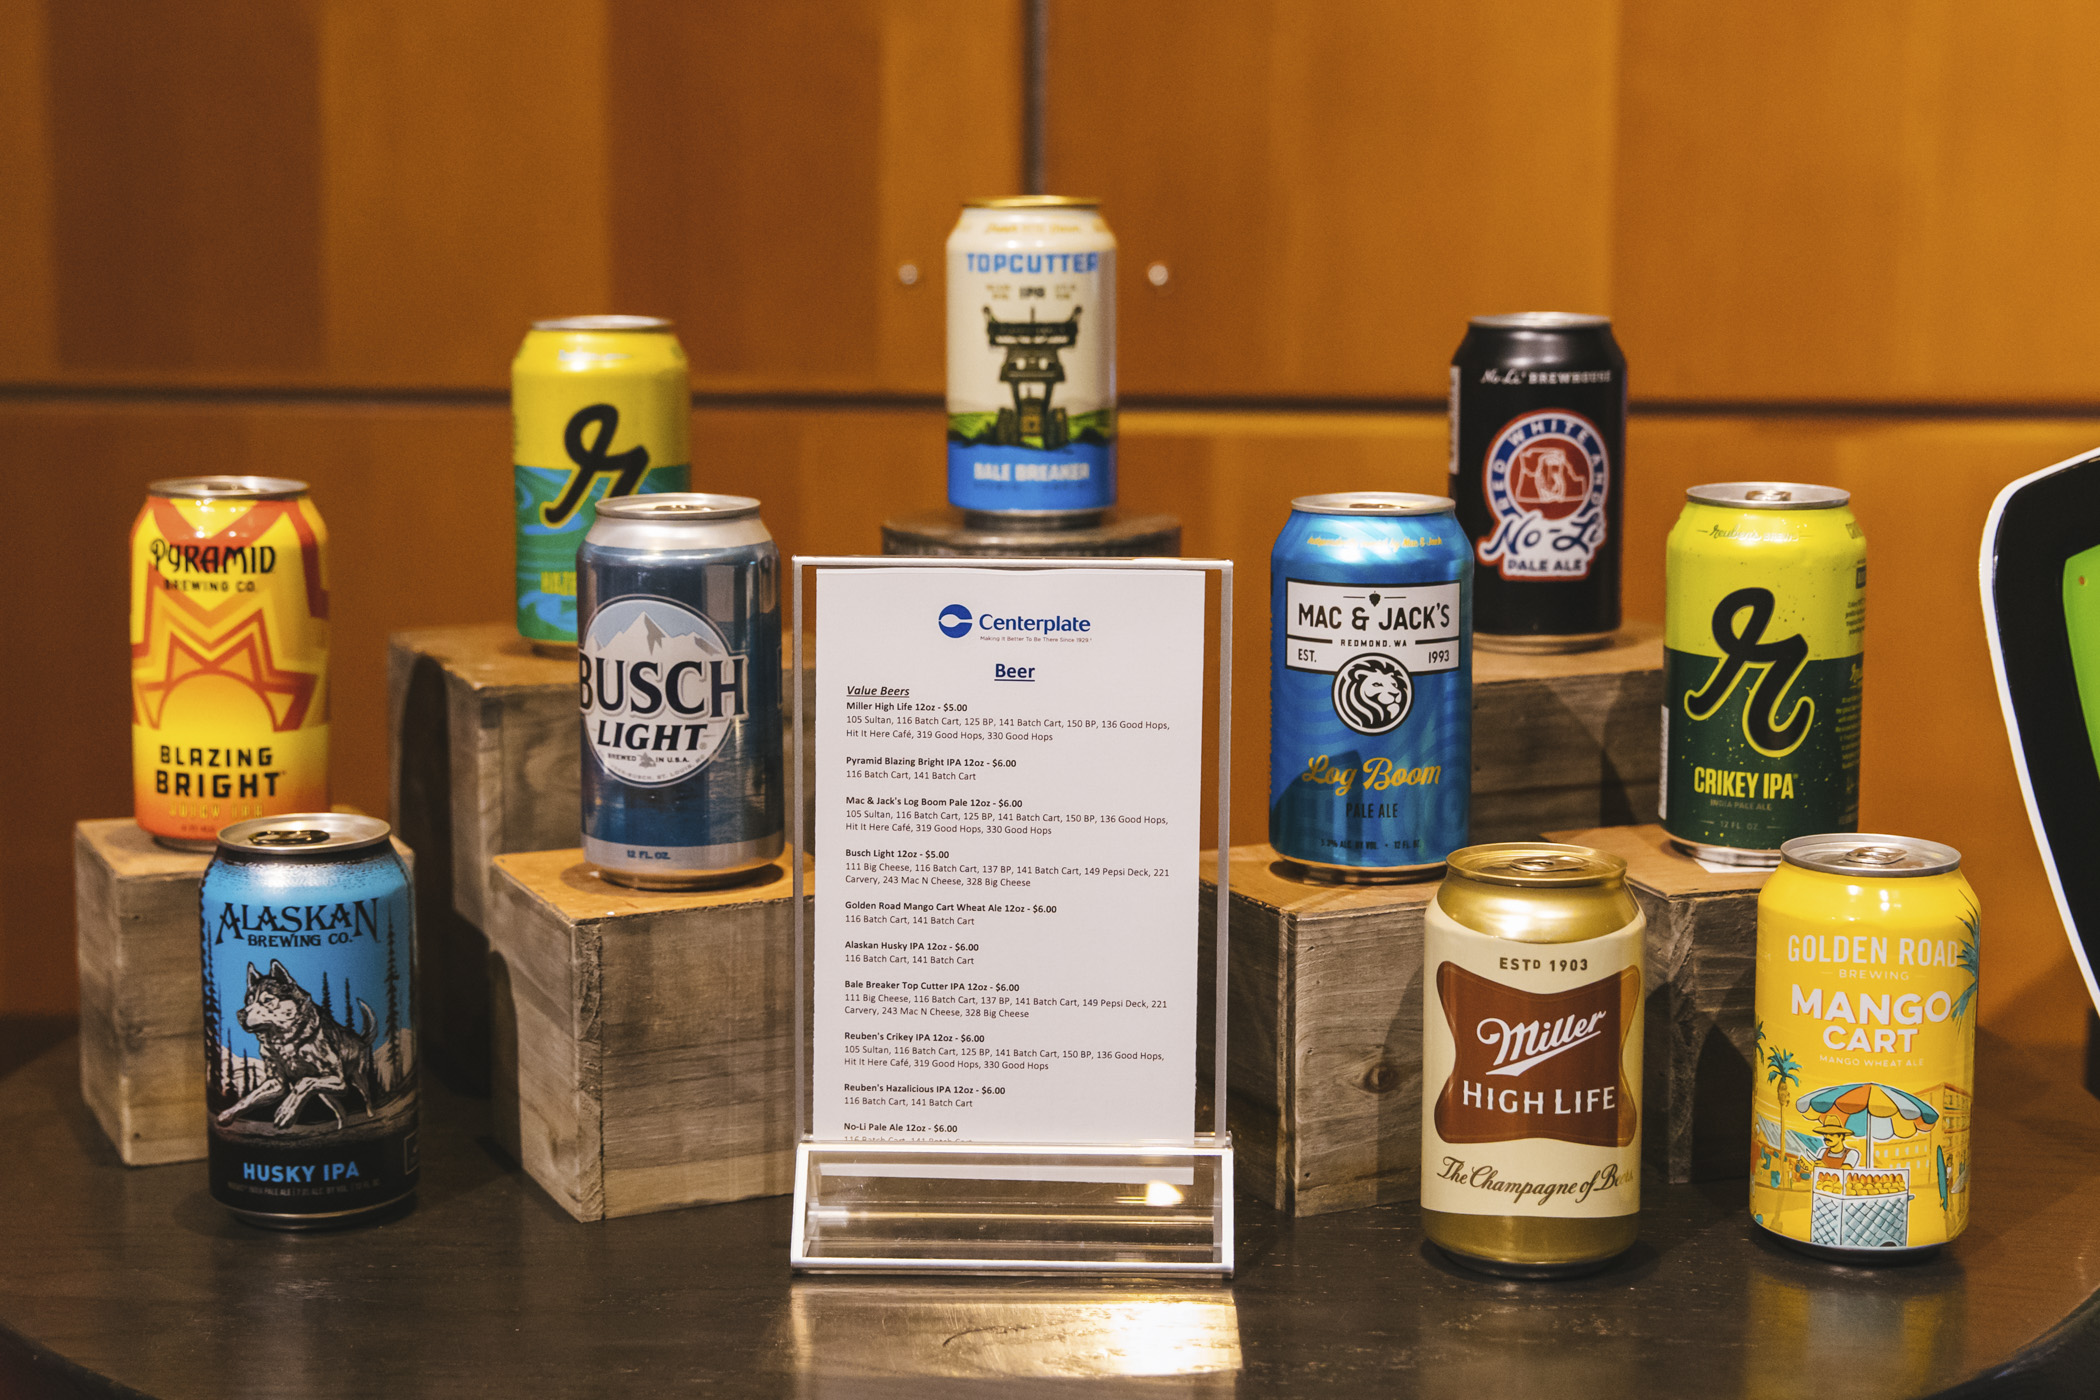 Beer selections! We snuck in a little preview of the beer, wine and spirits offerings for the 2020 Seattle Mariners season at T-Mobile Park! Home Opener is March 26 at 1:10 p.m. agains the Rangers. Go M's! (Image: Sunita Martini / Seattle Refined)